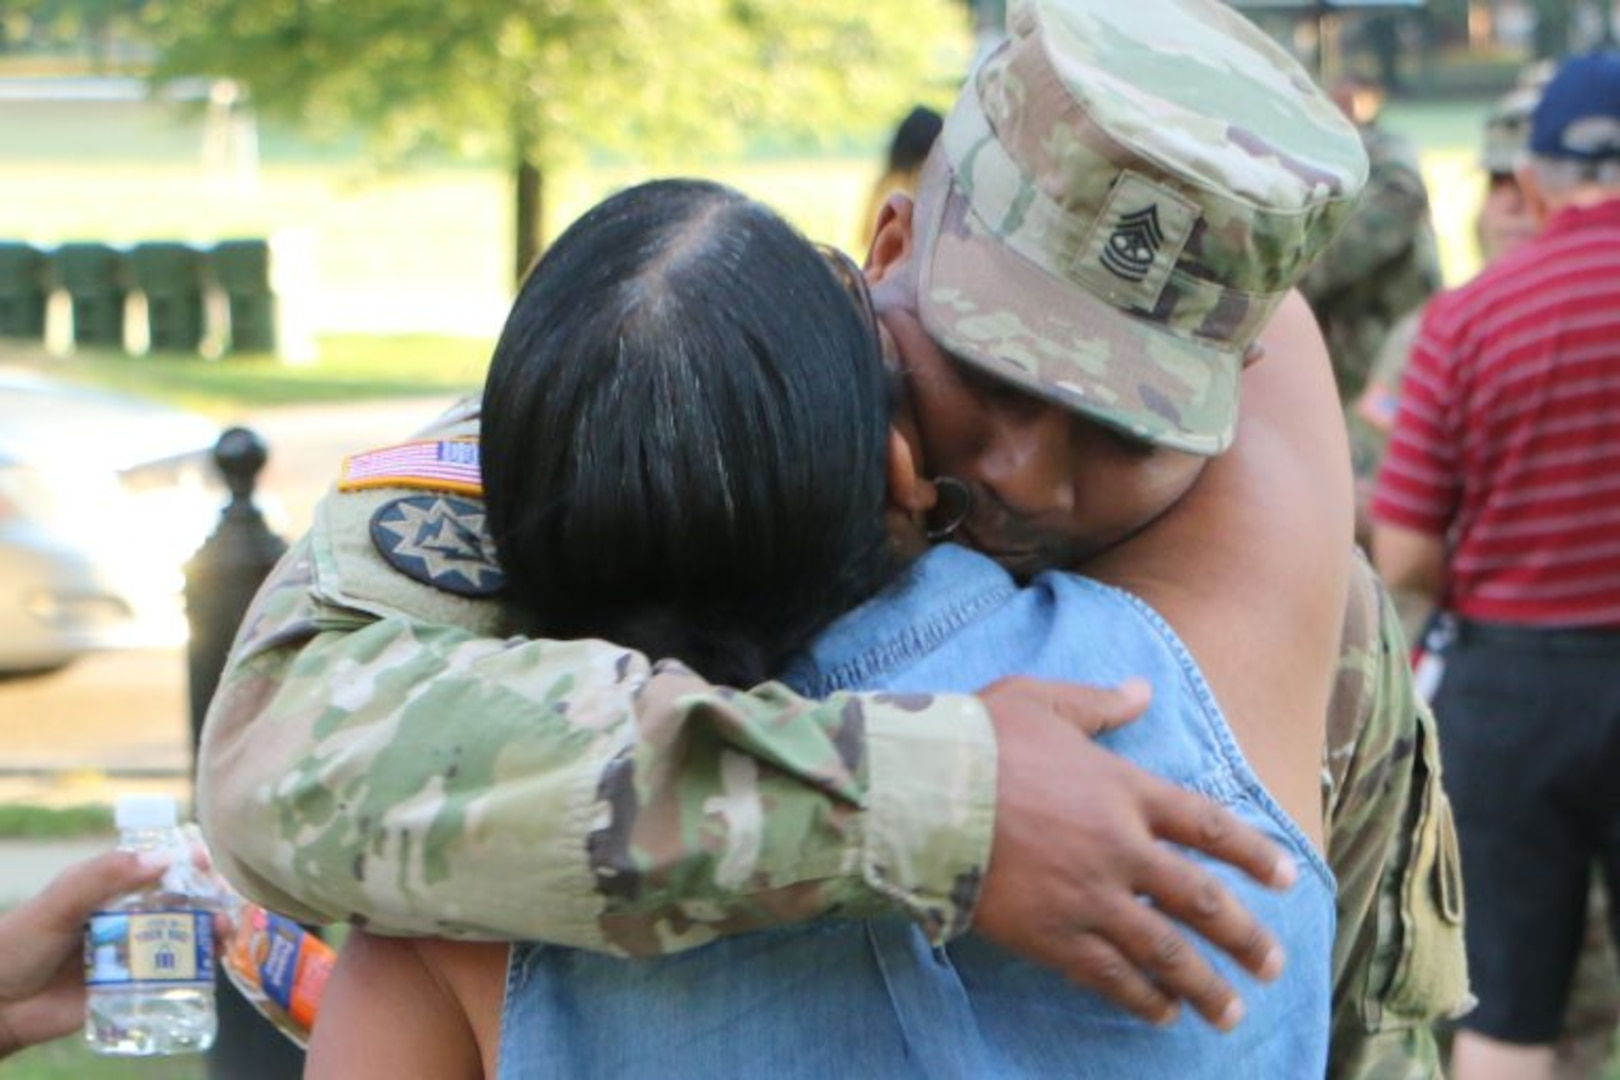 One of the final groups of Maryland and Virginia National Guard Soldiers assigned to the Fort Belvoir-based 29th Infantry Division returns to Virginia July 25, 2017, after serving on federal active duty since November 2016.